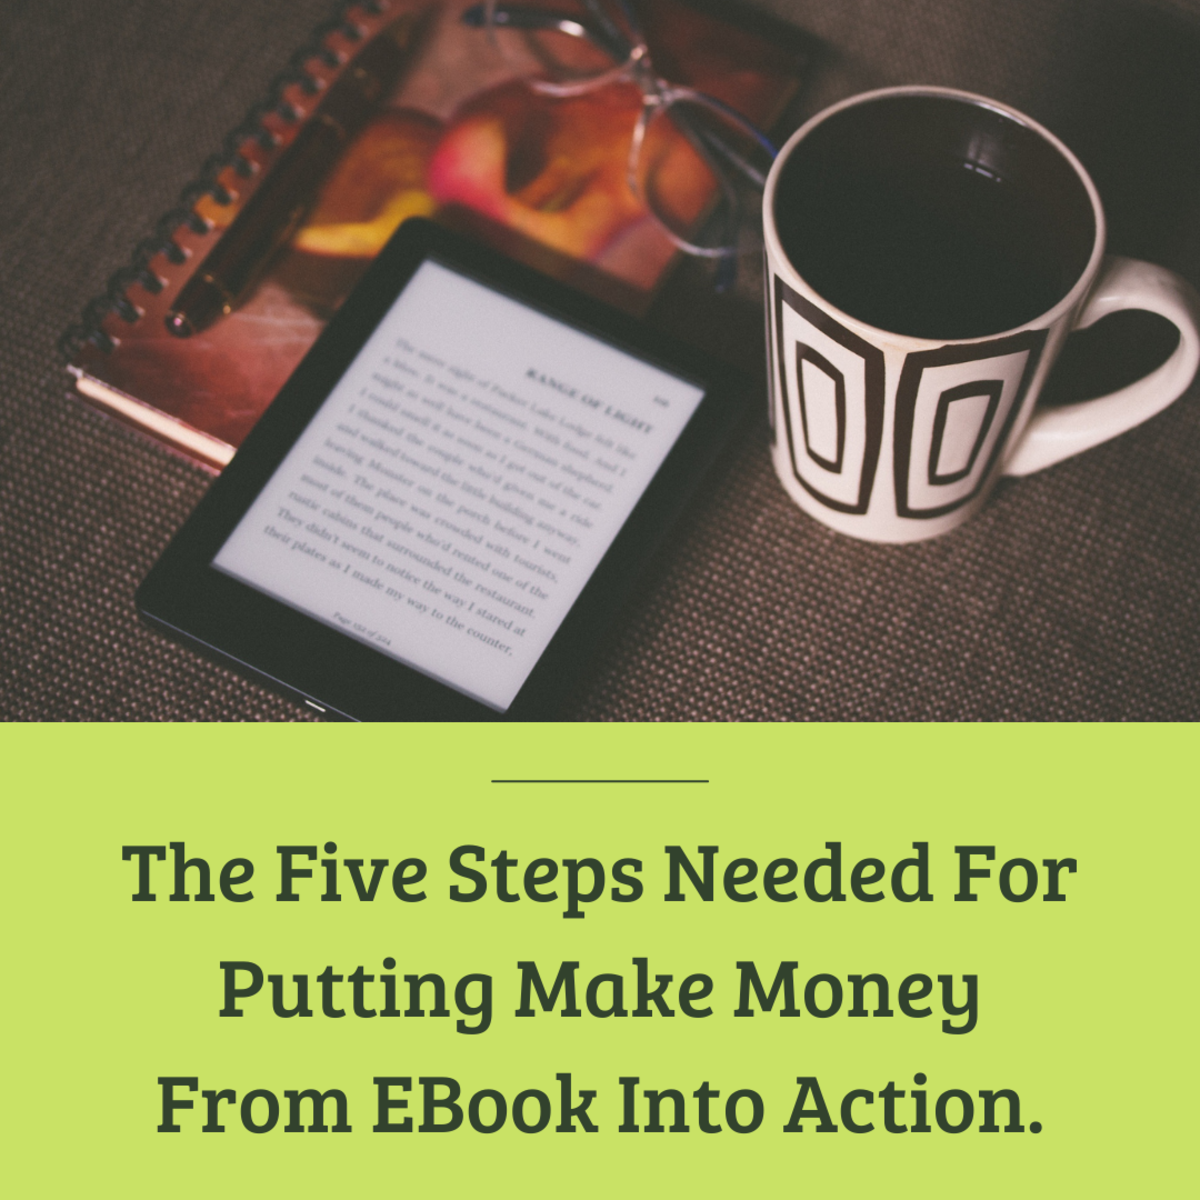 Make Money From eBook